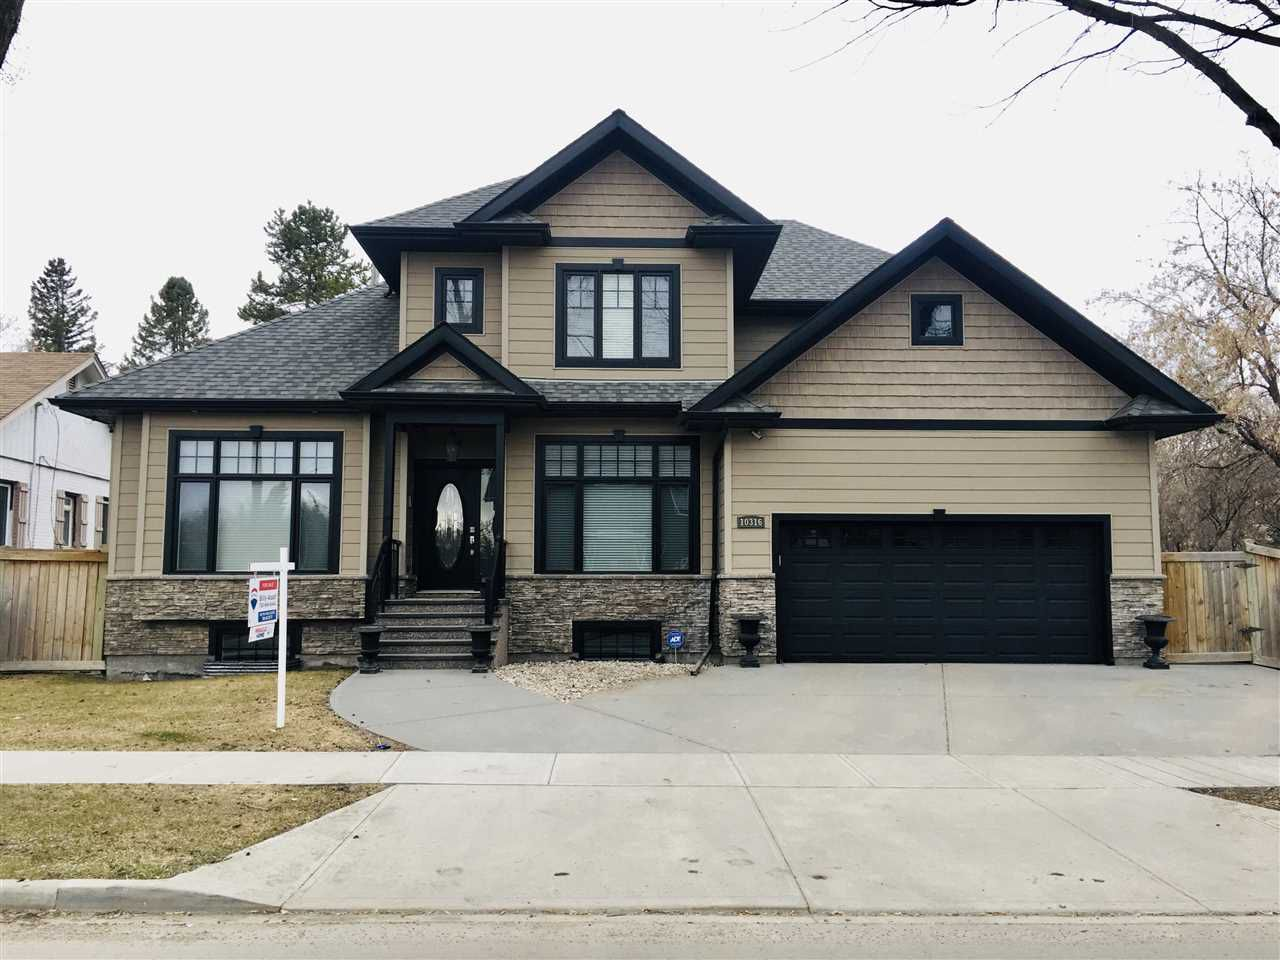 Main Photo: 10316 136 Street in Edmonton: Zone 11 House for sale : MLS®# E4149631